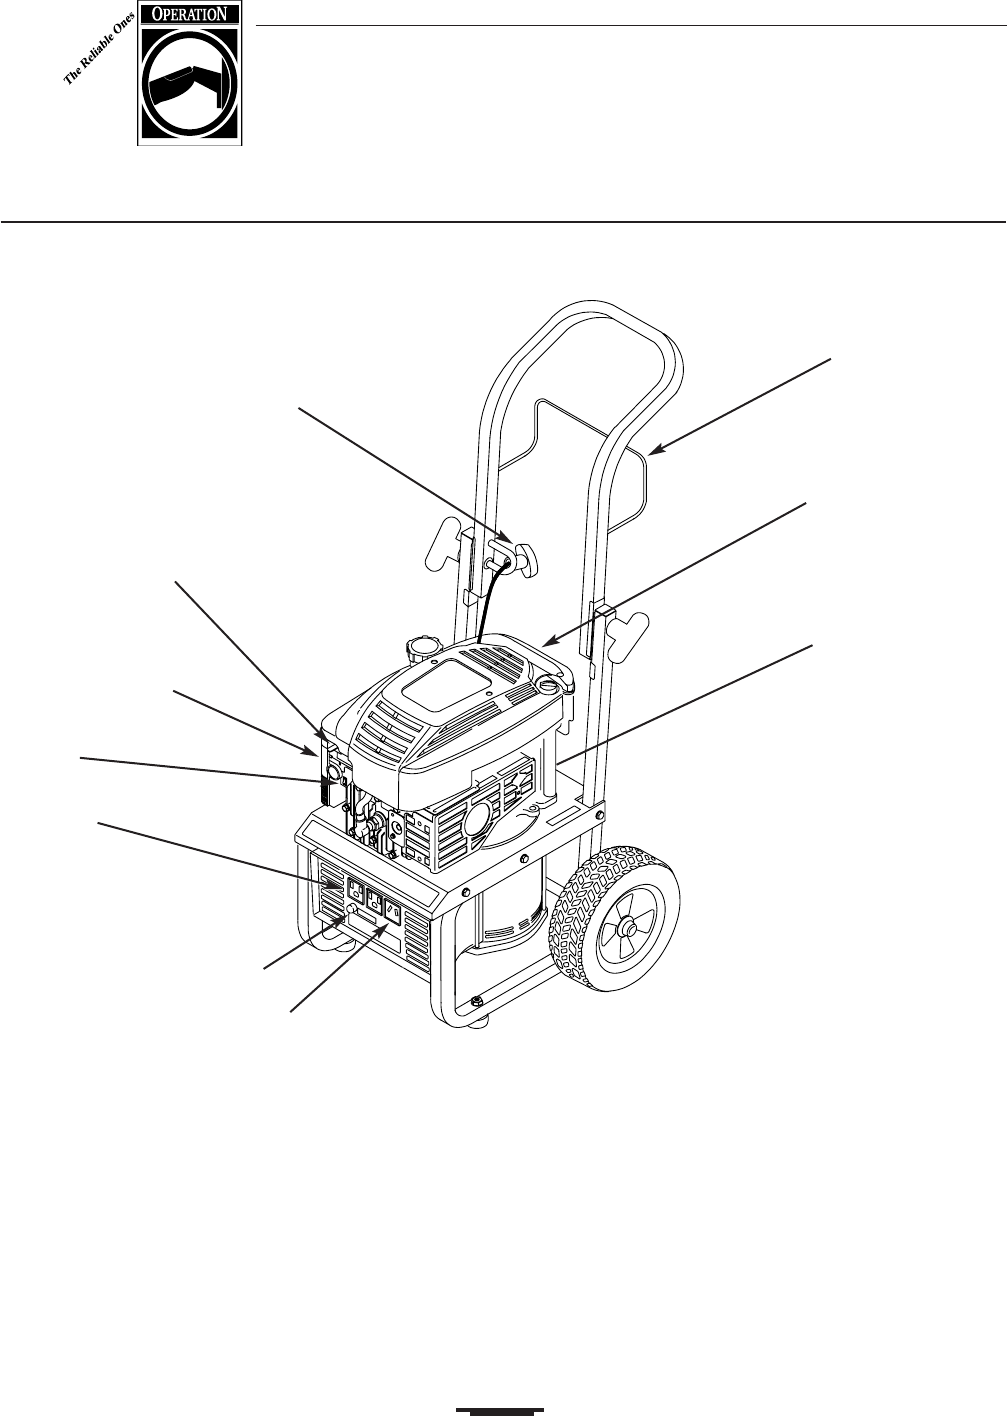 Page 5 of Generac Portable Generator 2500 User Guide